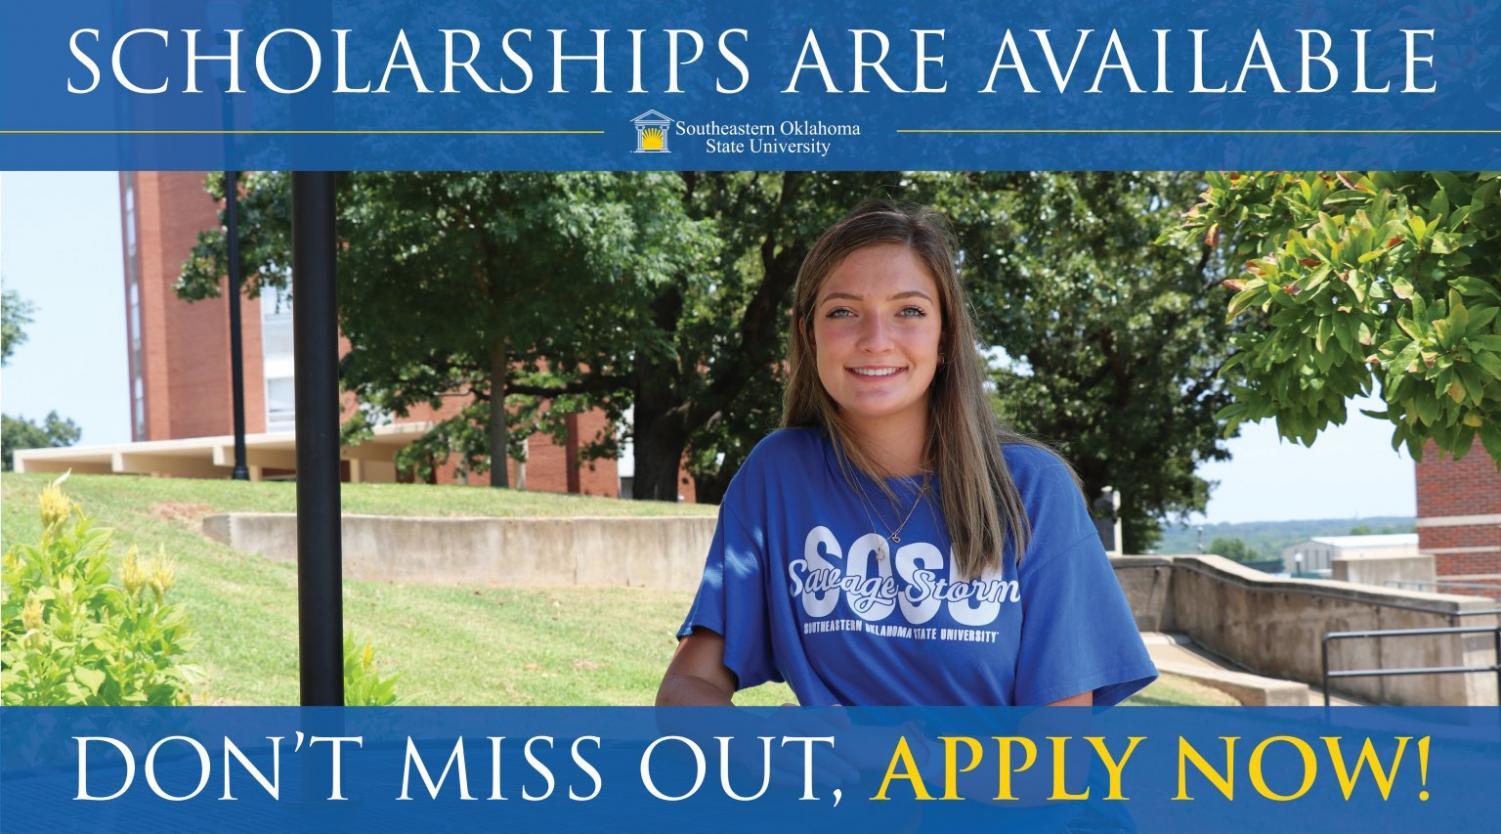 Do not miss out on the opportunities right in front of you. Submit your application today!